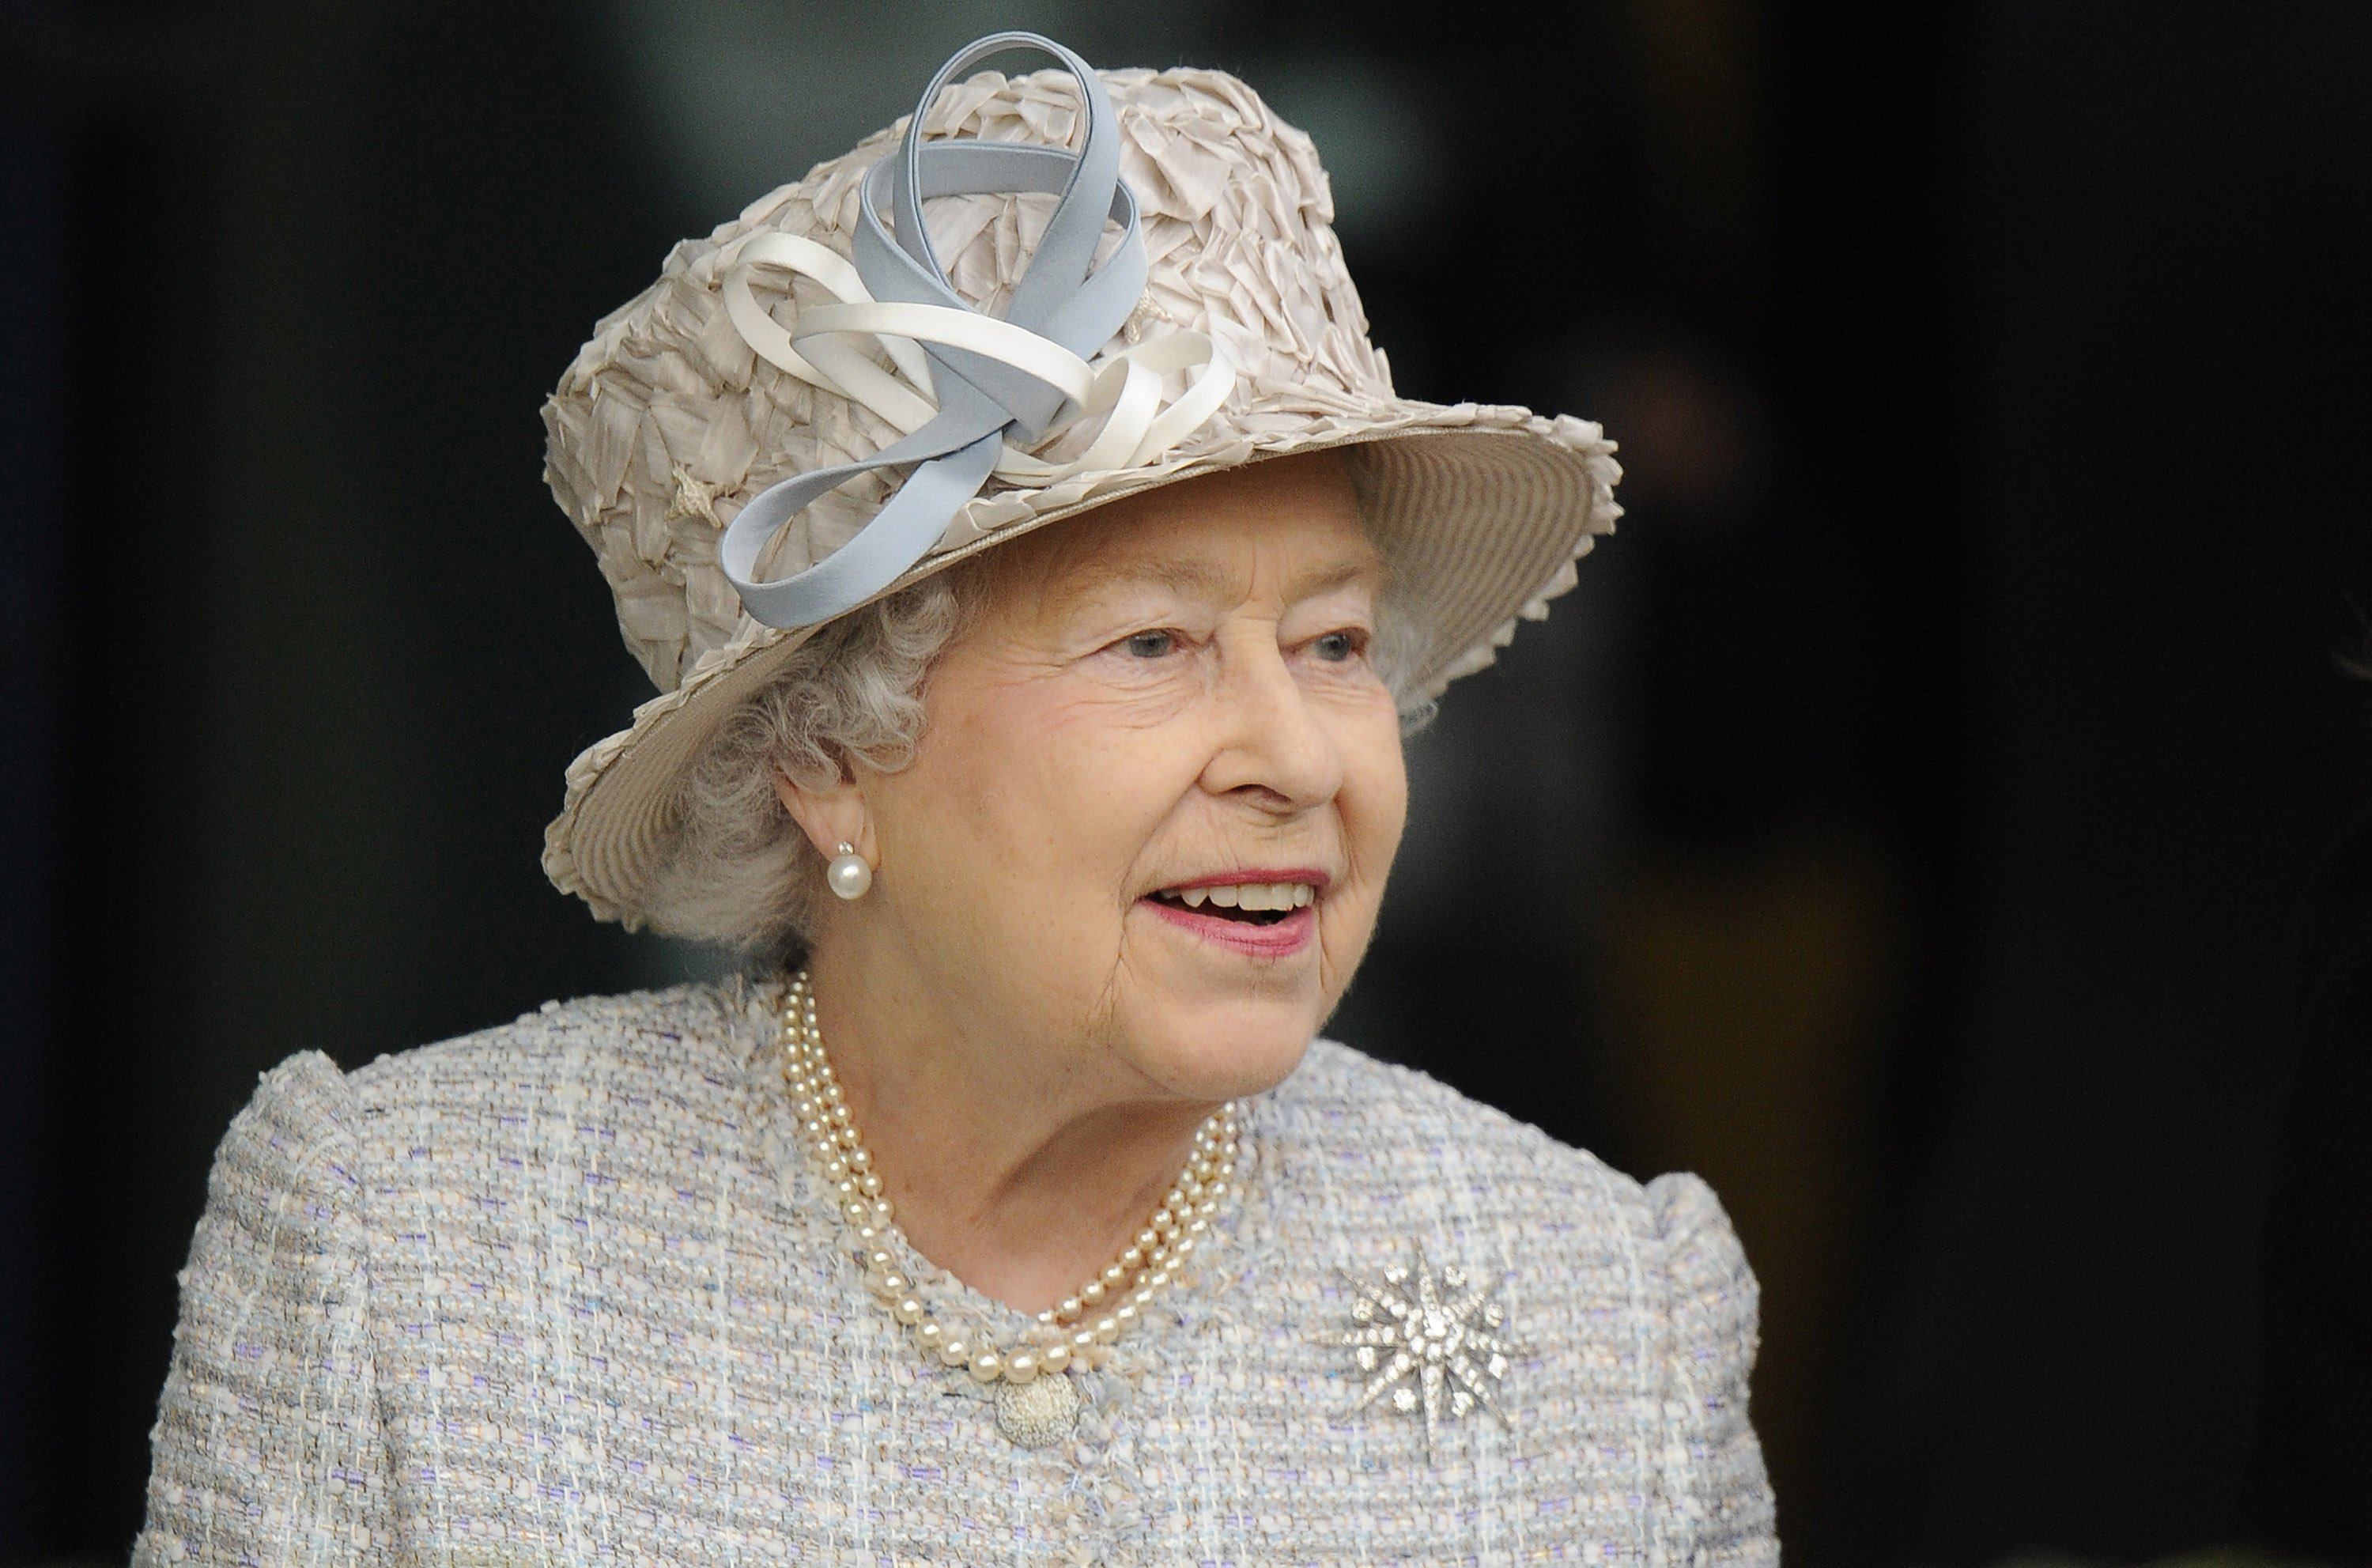 Queen Elizabeth attends Ascot racecourse on October 20, 2012 in Ascot, England. | Photo: Getty Images